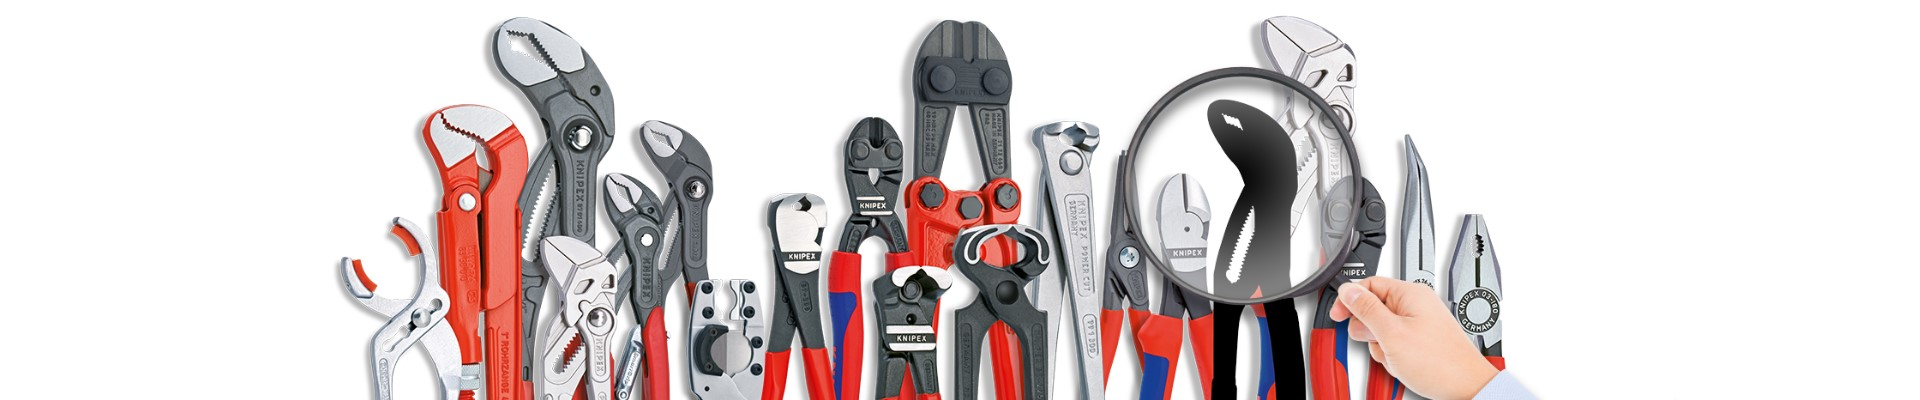 banner-knipex